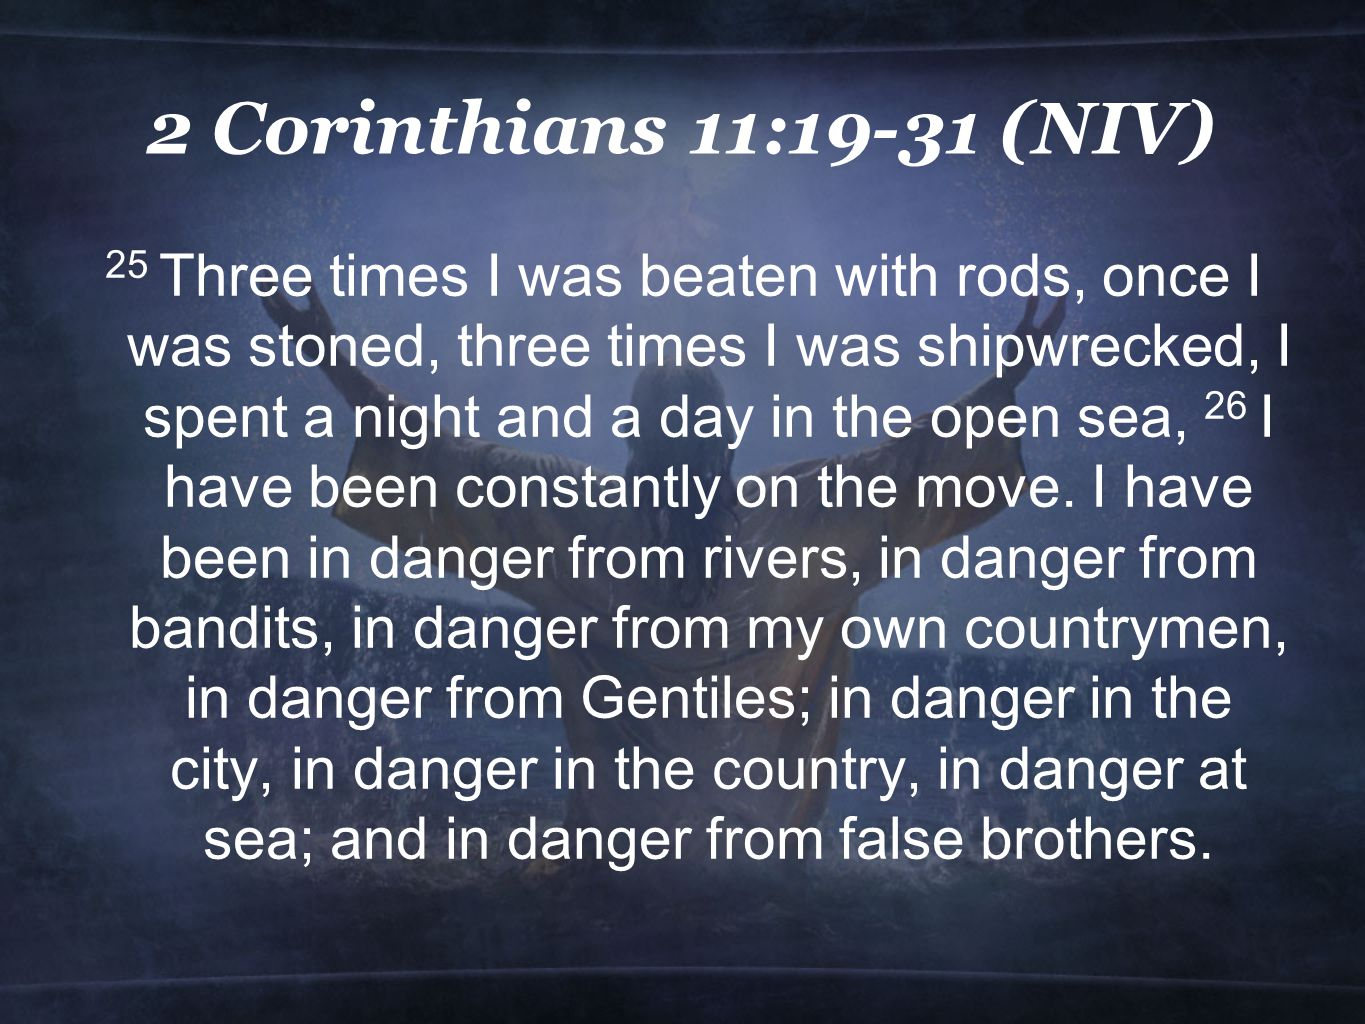 2 Corinthians 11:19-31 (NIV) 25 Three times I was beaten with rods, once I was stoned, three times I was shipwrecked, I spent a night and a day in the open sea, 26 I have been constantly on the move.